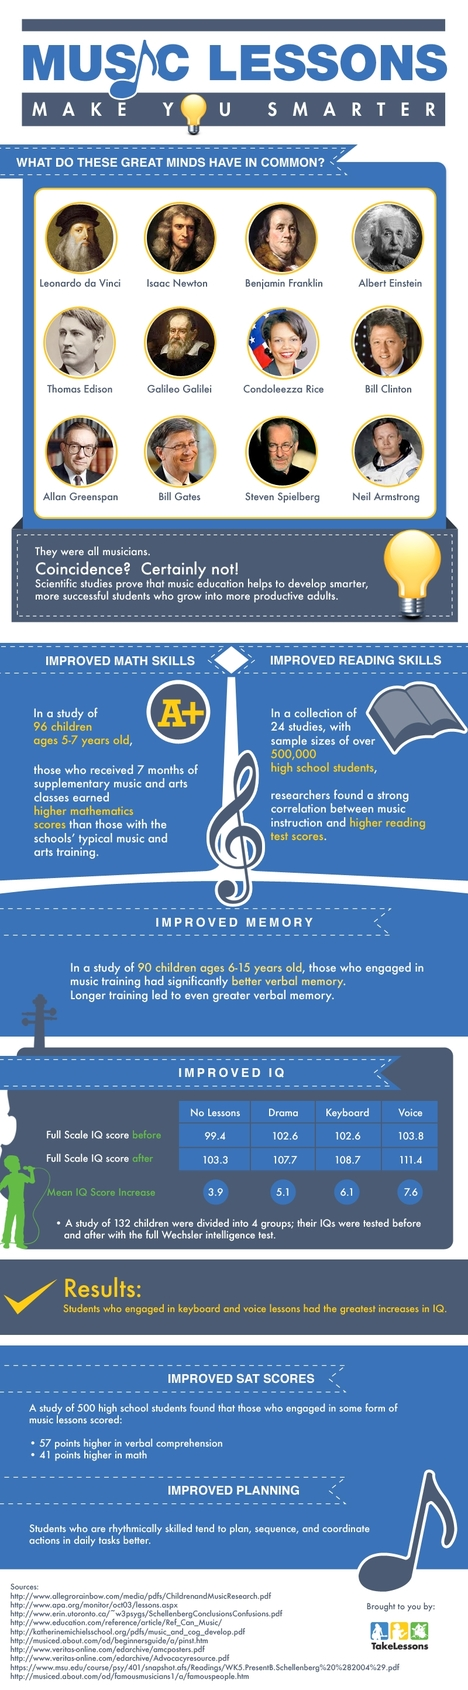 Music Lessons Make You Smarter (Infographic)